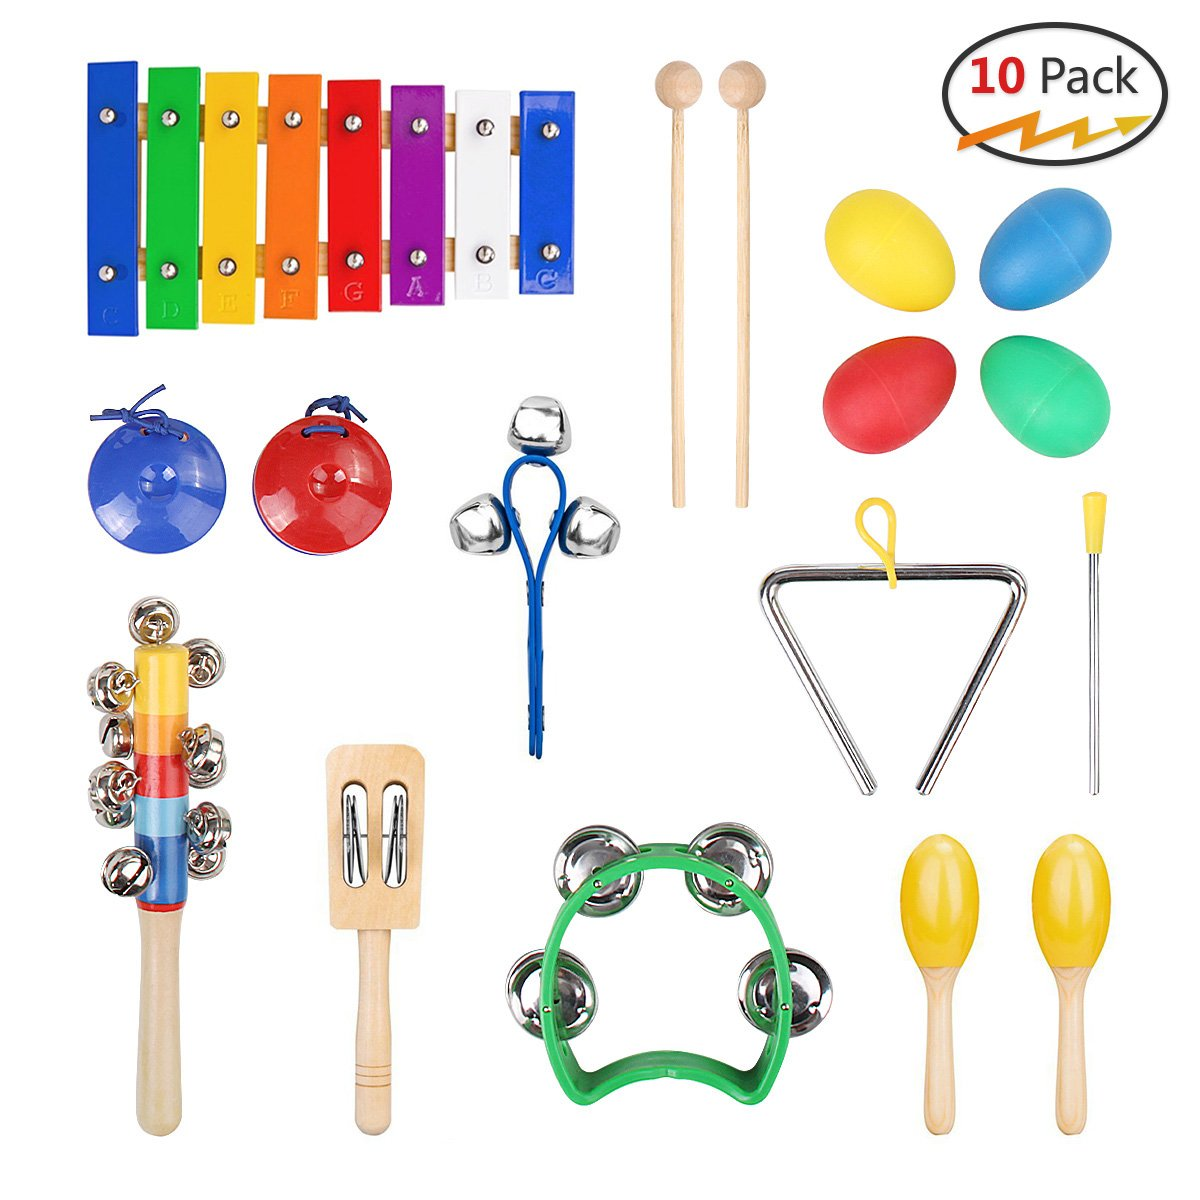 Ruby Herty Musical Instruments Set with Xylophone for Kids - 10 Pcs.Toddler Wooden Toy Rhythm Band Percussion Set with Carrying Bags